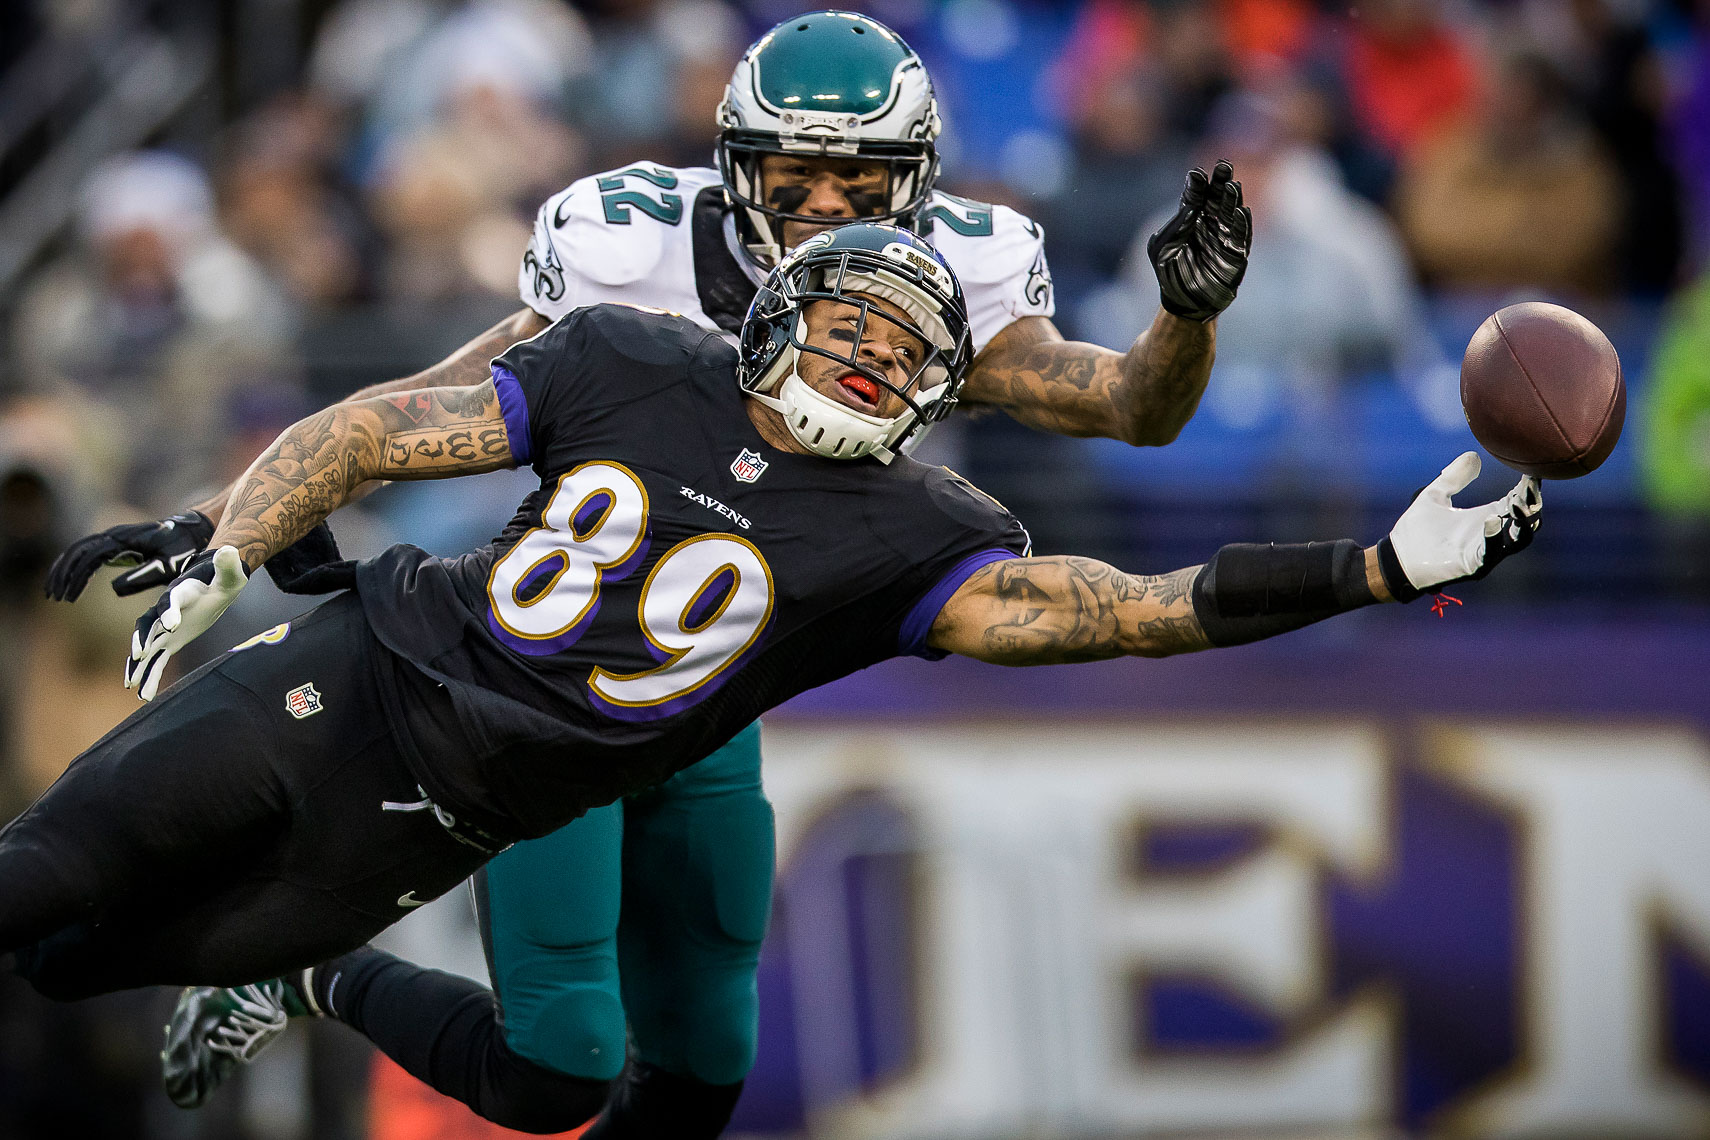 ravens28  NFL Baltimore Ravens photos NFL behind the scenes documentary sports photographer photo of receiver Steve Smith Sr.